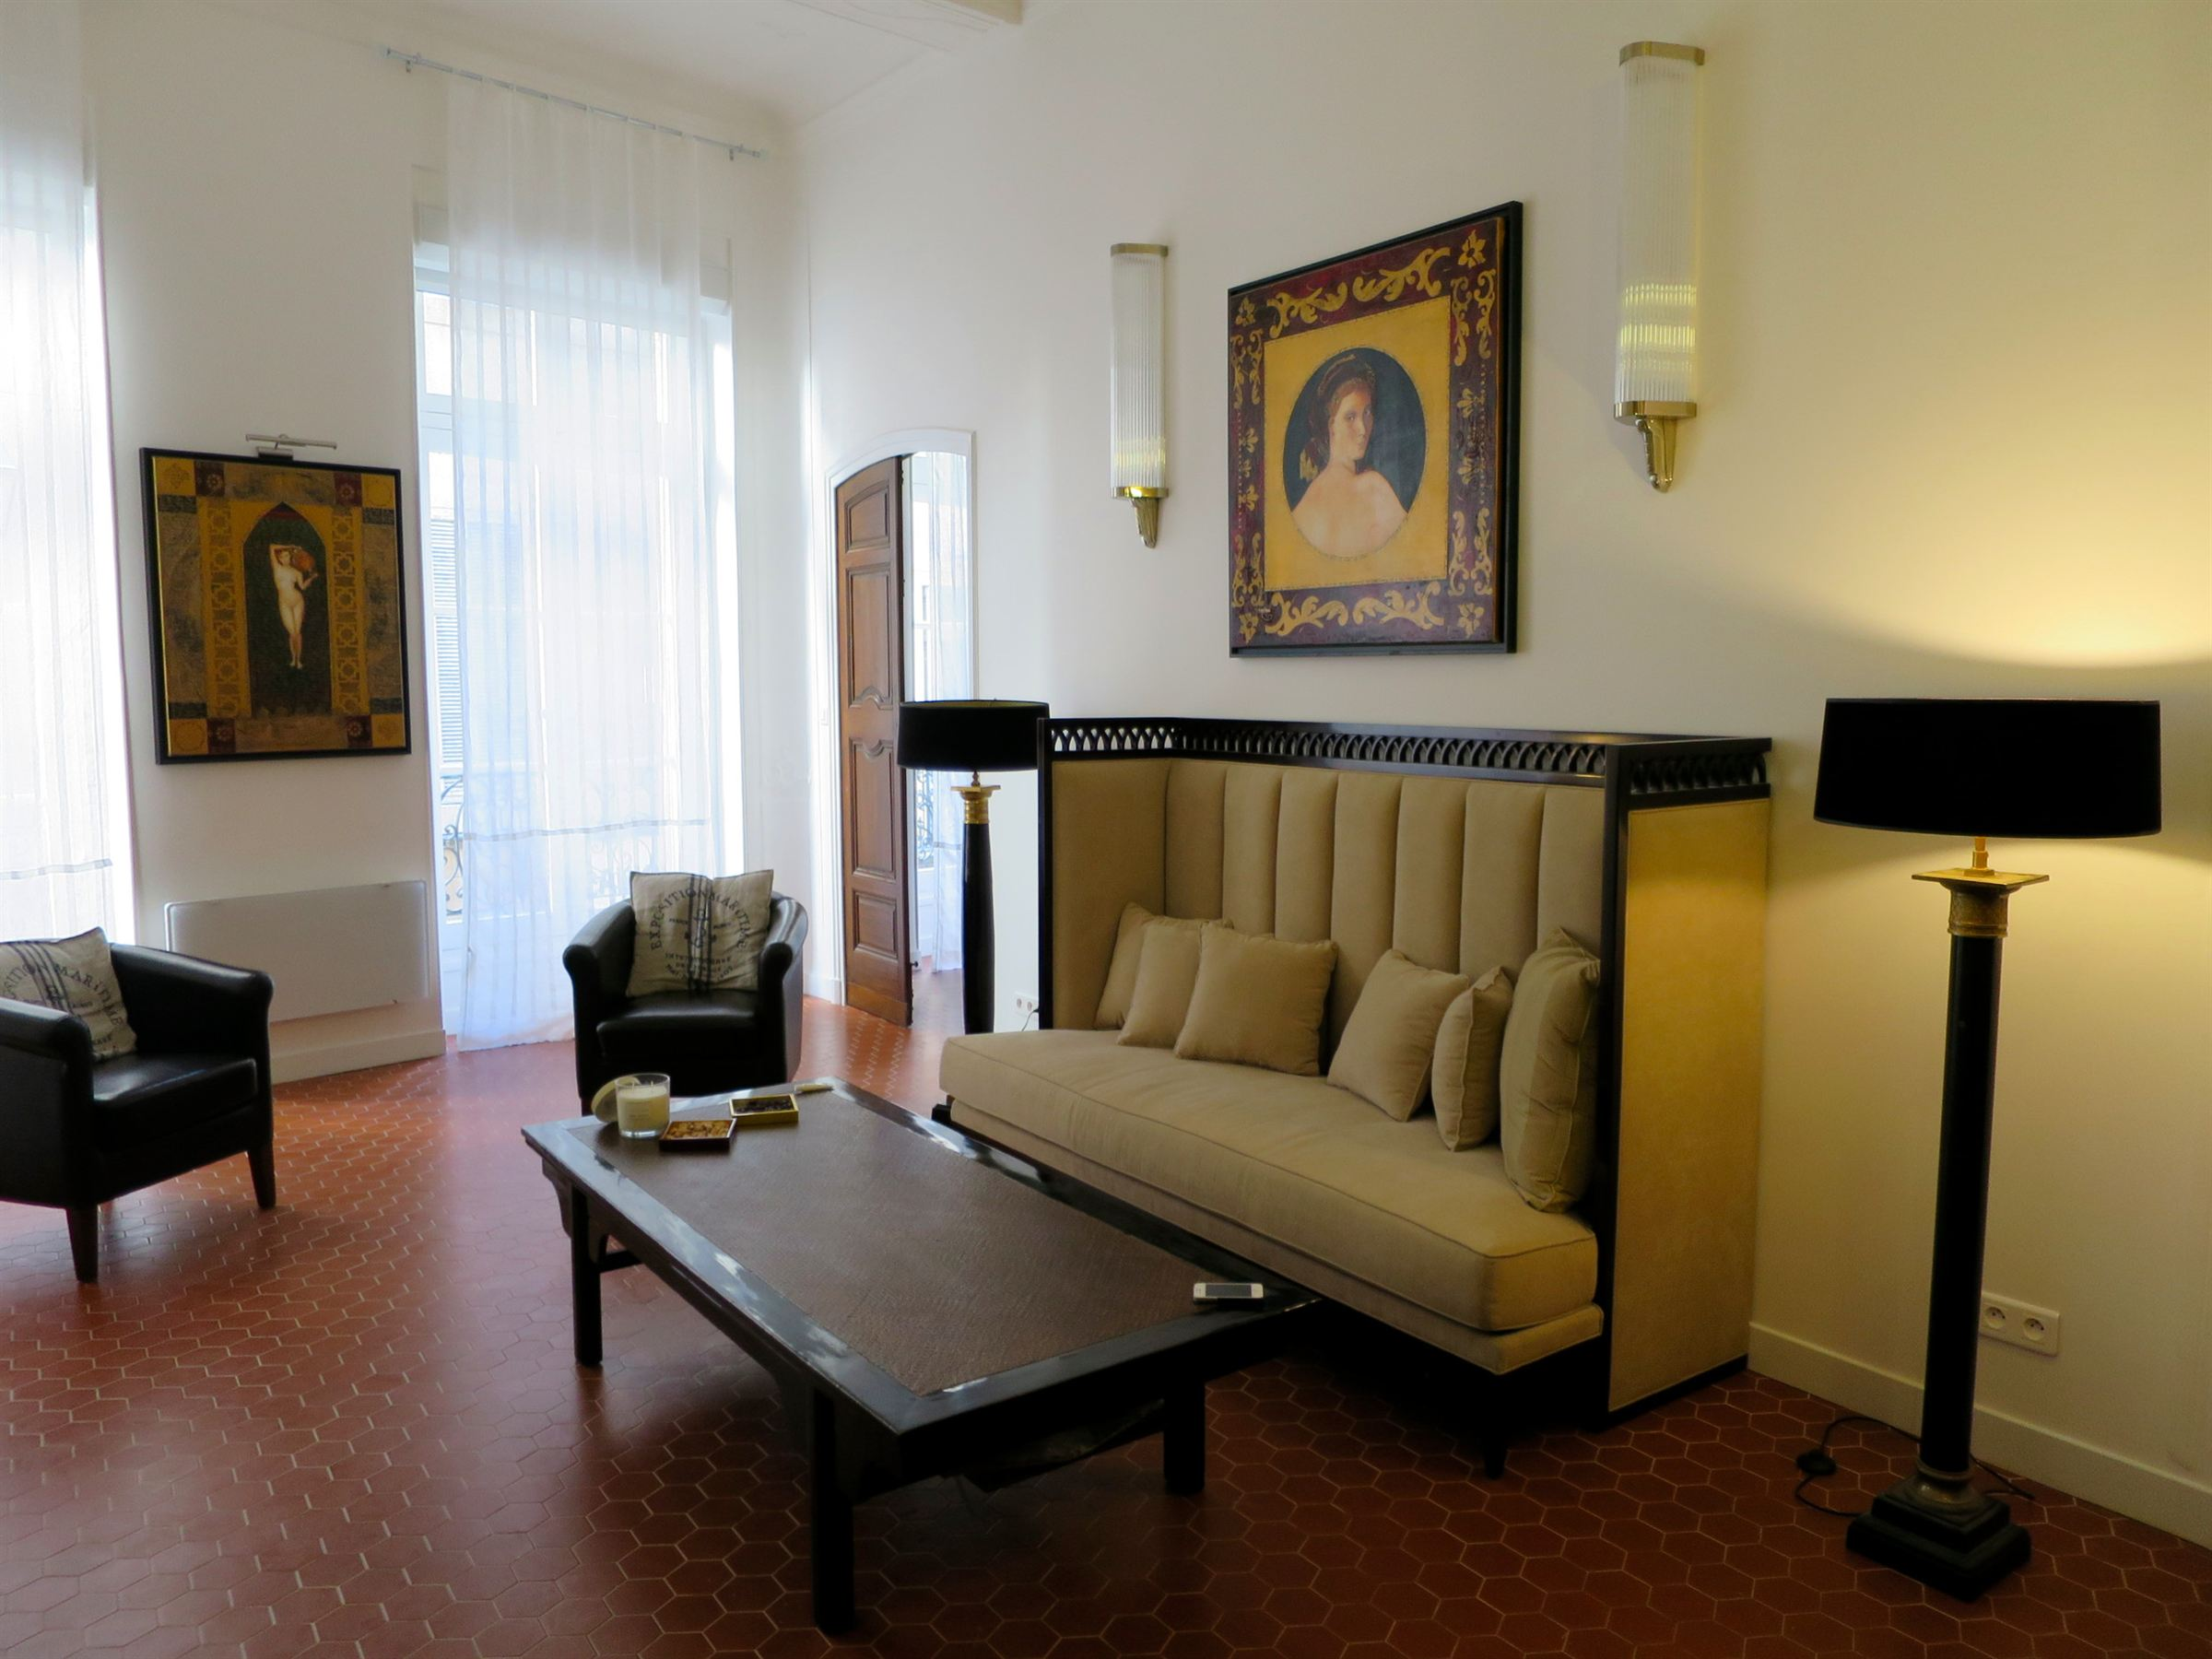 Apartment for Sale at HISTORIC CENTER Other Provence-Alpes-Cote D'Azur, Provence-Alpes-Cote D'Azur, 13100 France